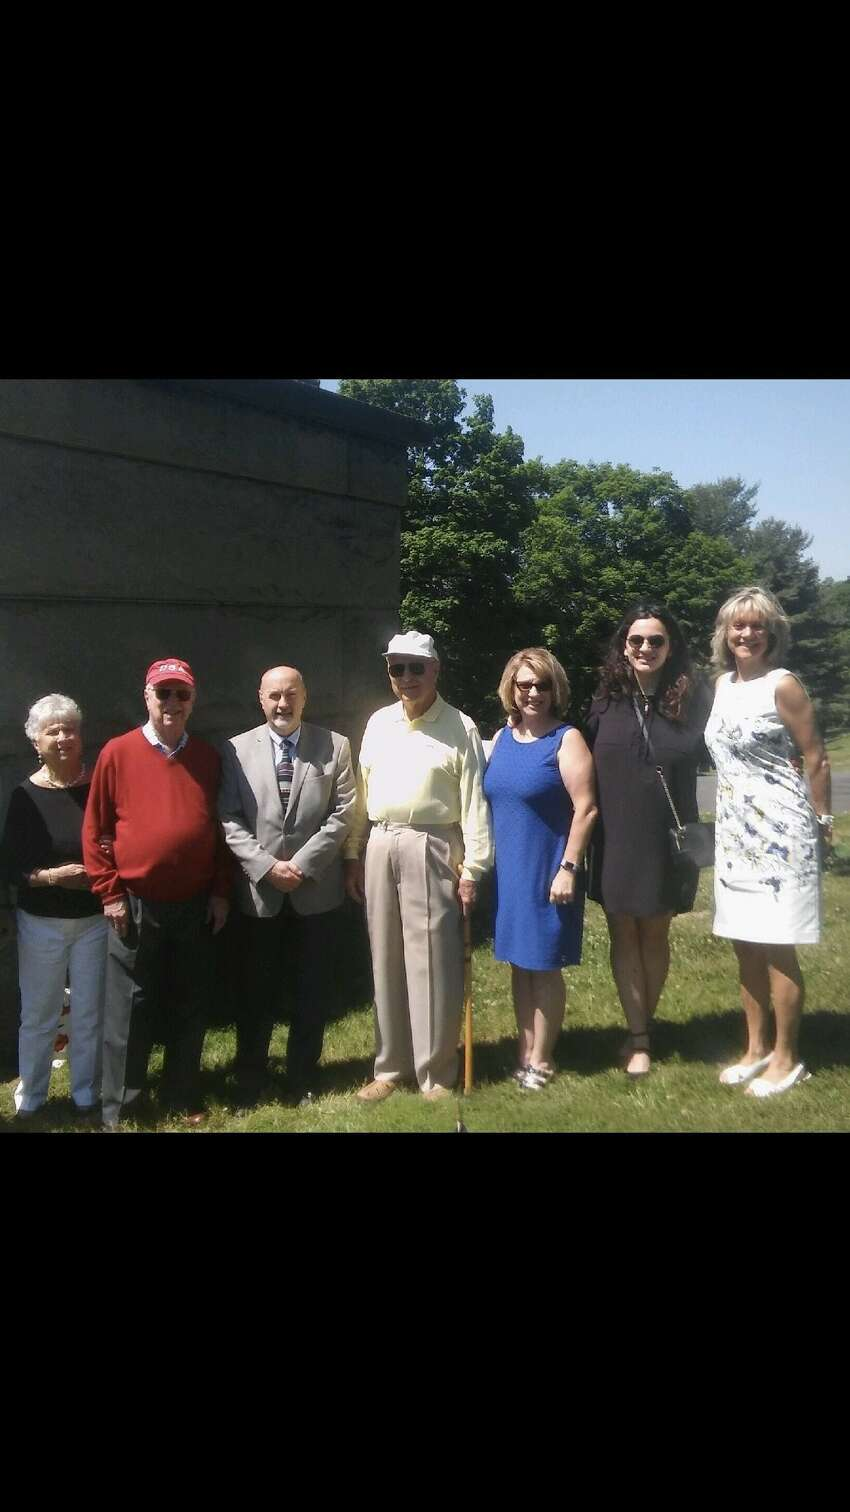 Troy Mayor Patrick Madden (third from left) joins descendants of Troy hero Jack J. Callahan at the grave of the Troy High alum who was action at age 18. Callahan's grand neice, Lisa Karam (in blue dress, third from right) and husband Jim Karam researched the last day of Callahan's brave life. (Family photo)